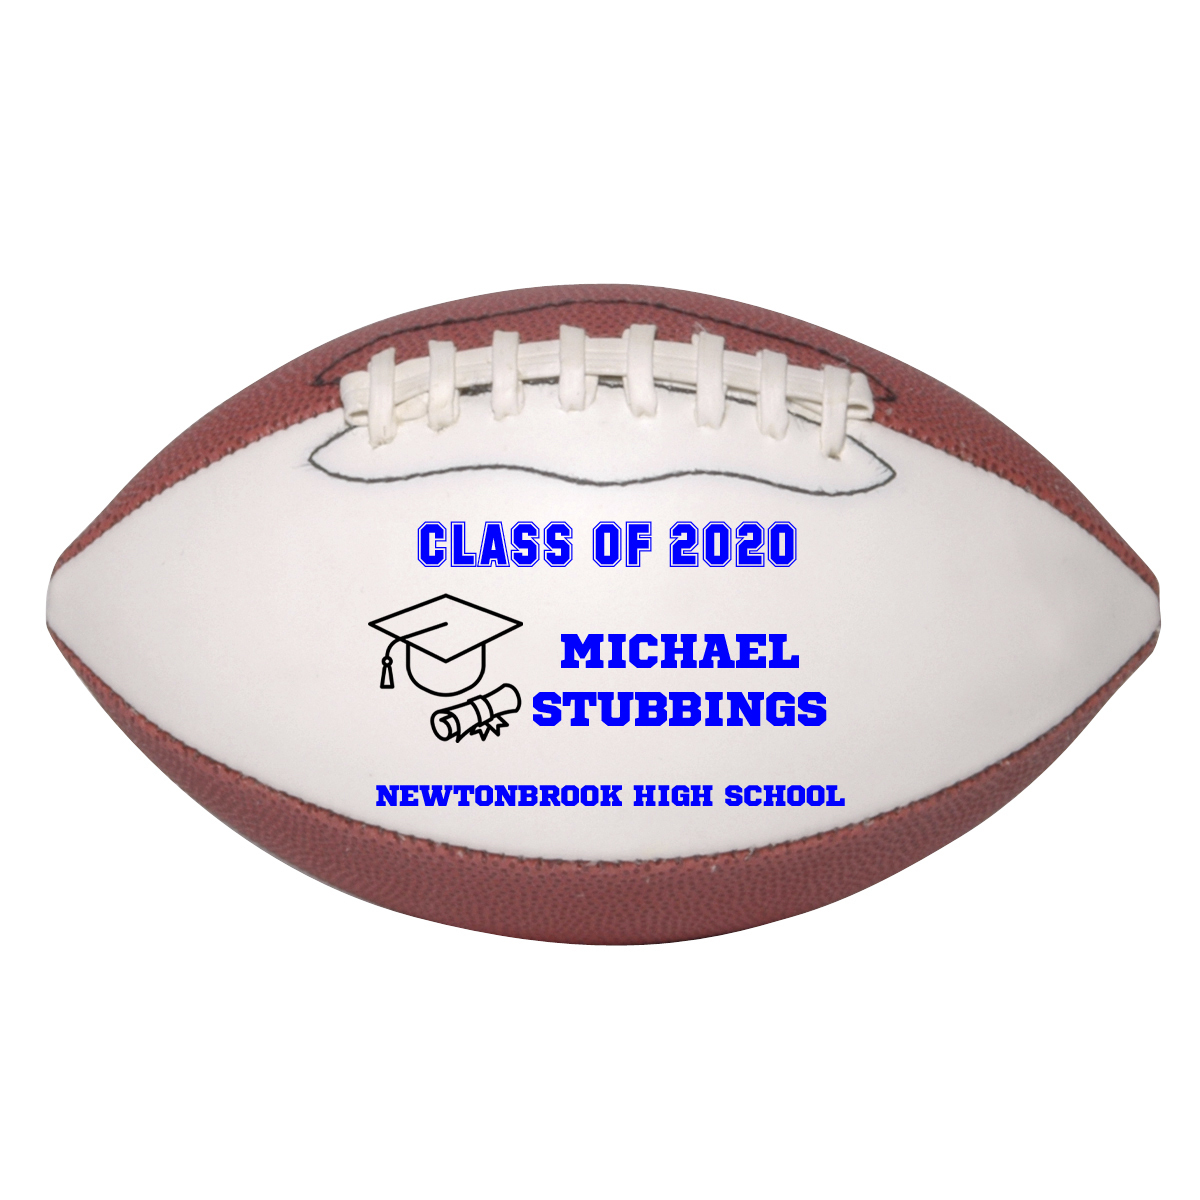 Personalized Custom Class of 2020 Graduation Mini Football Gift Blue Text - $34.95